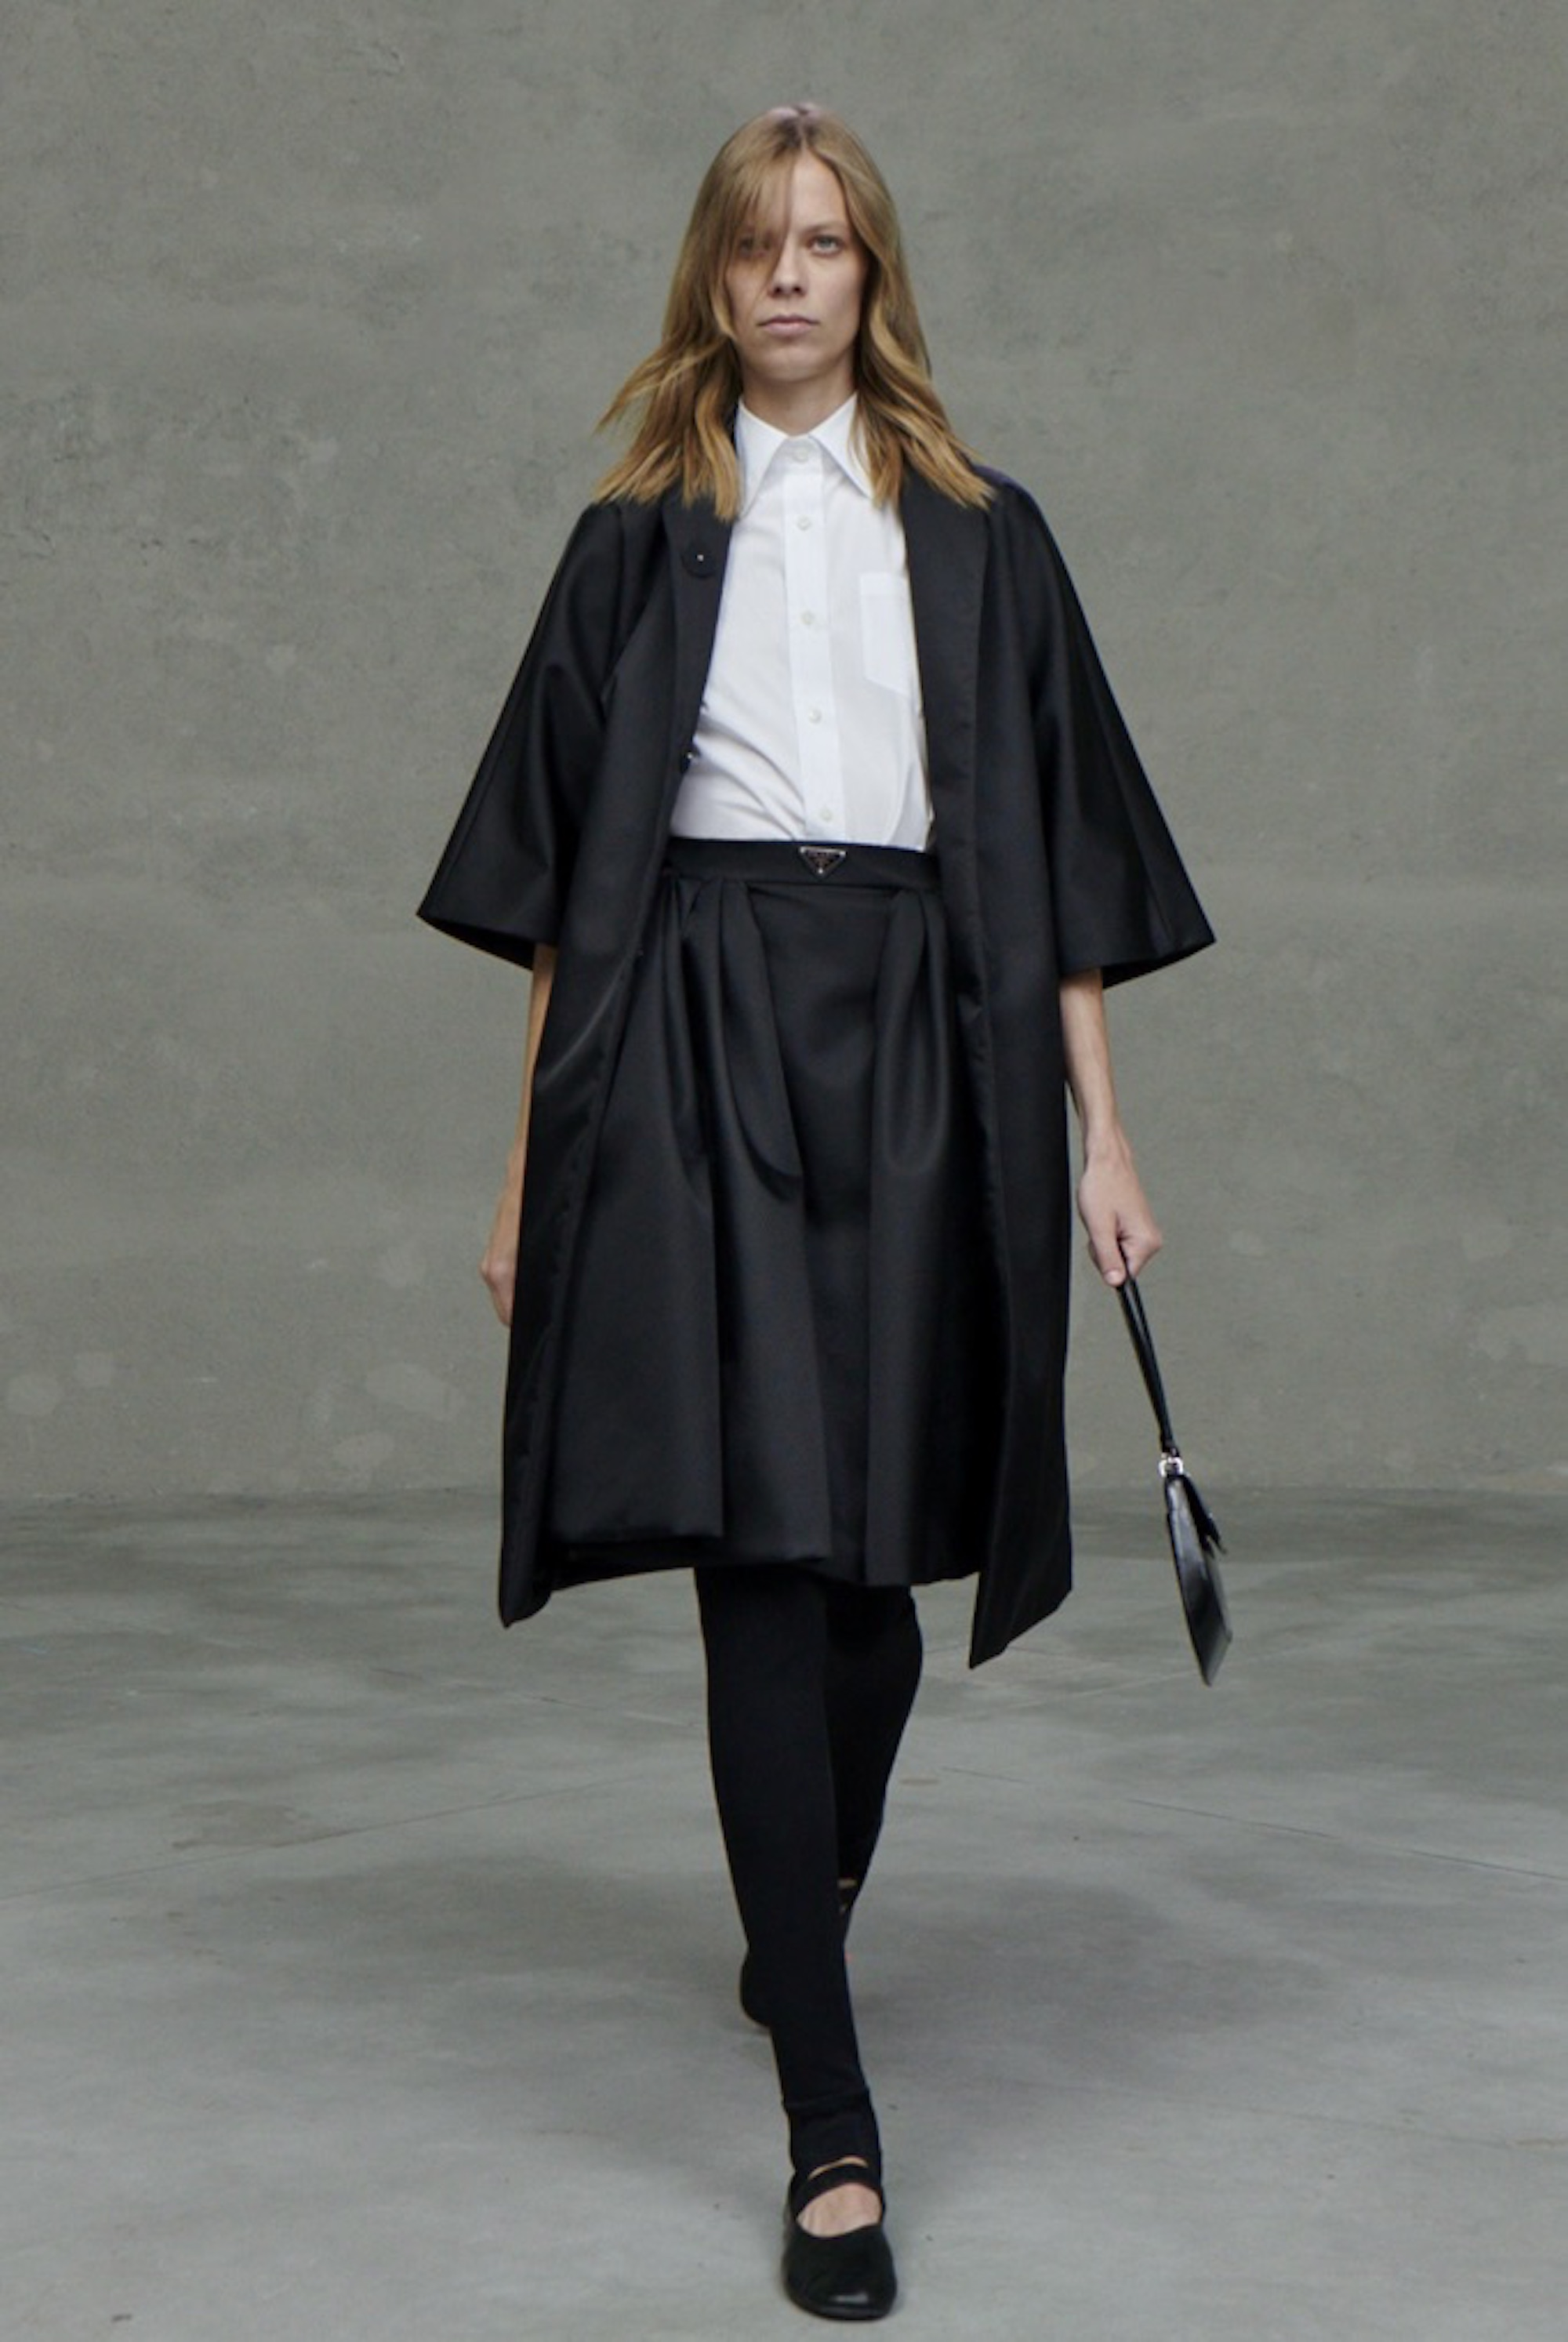 Prada SS21 collection black jacket with black culottes